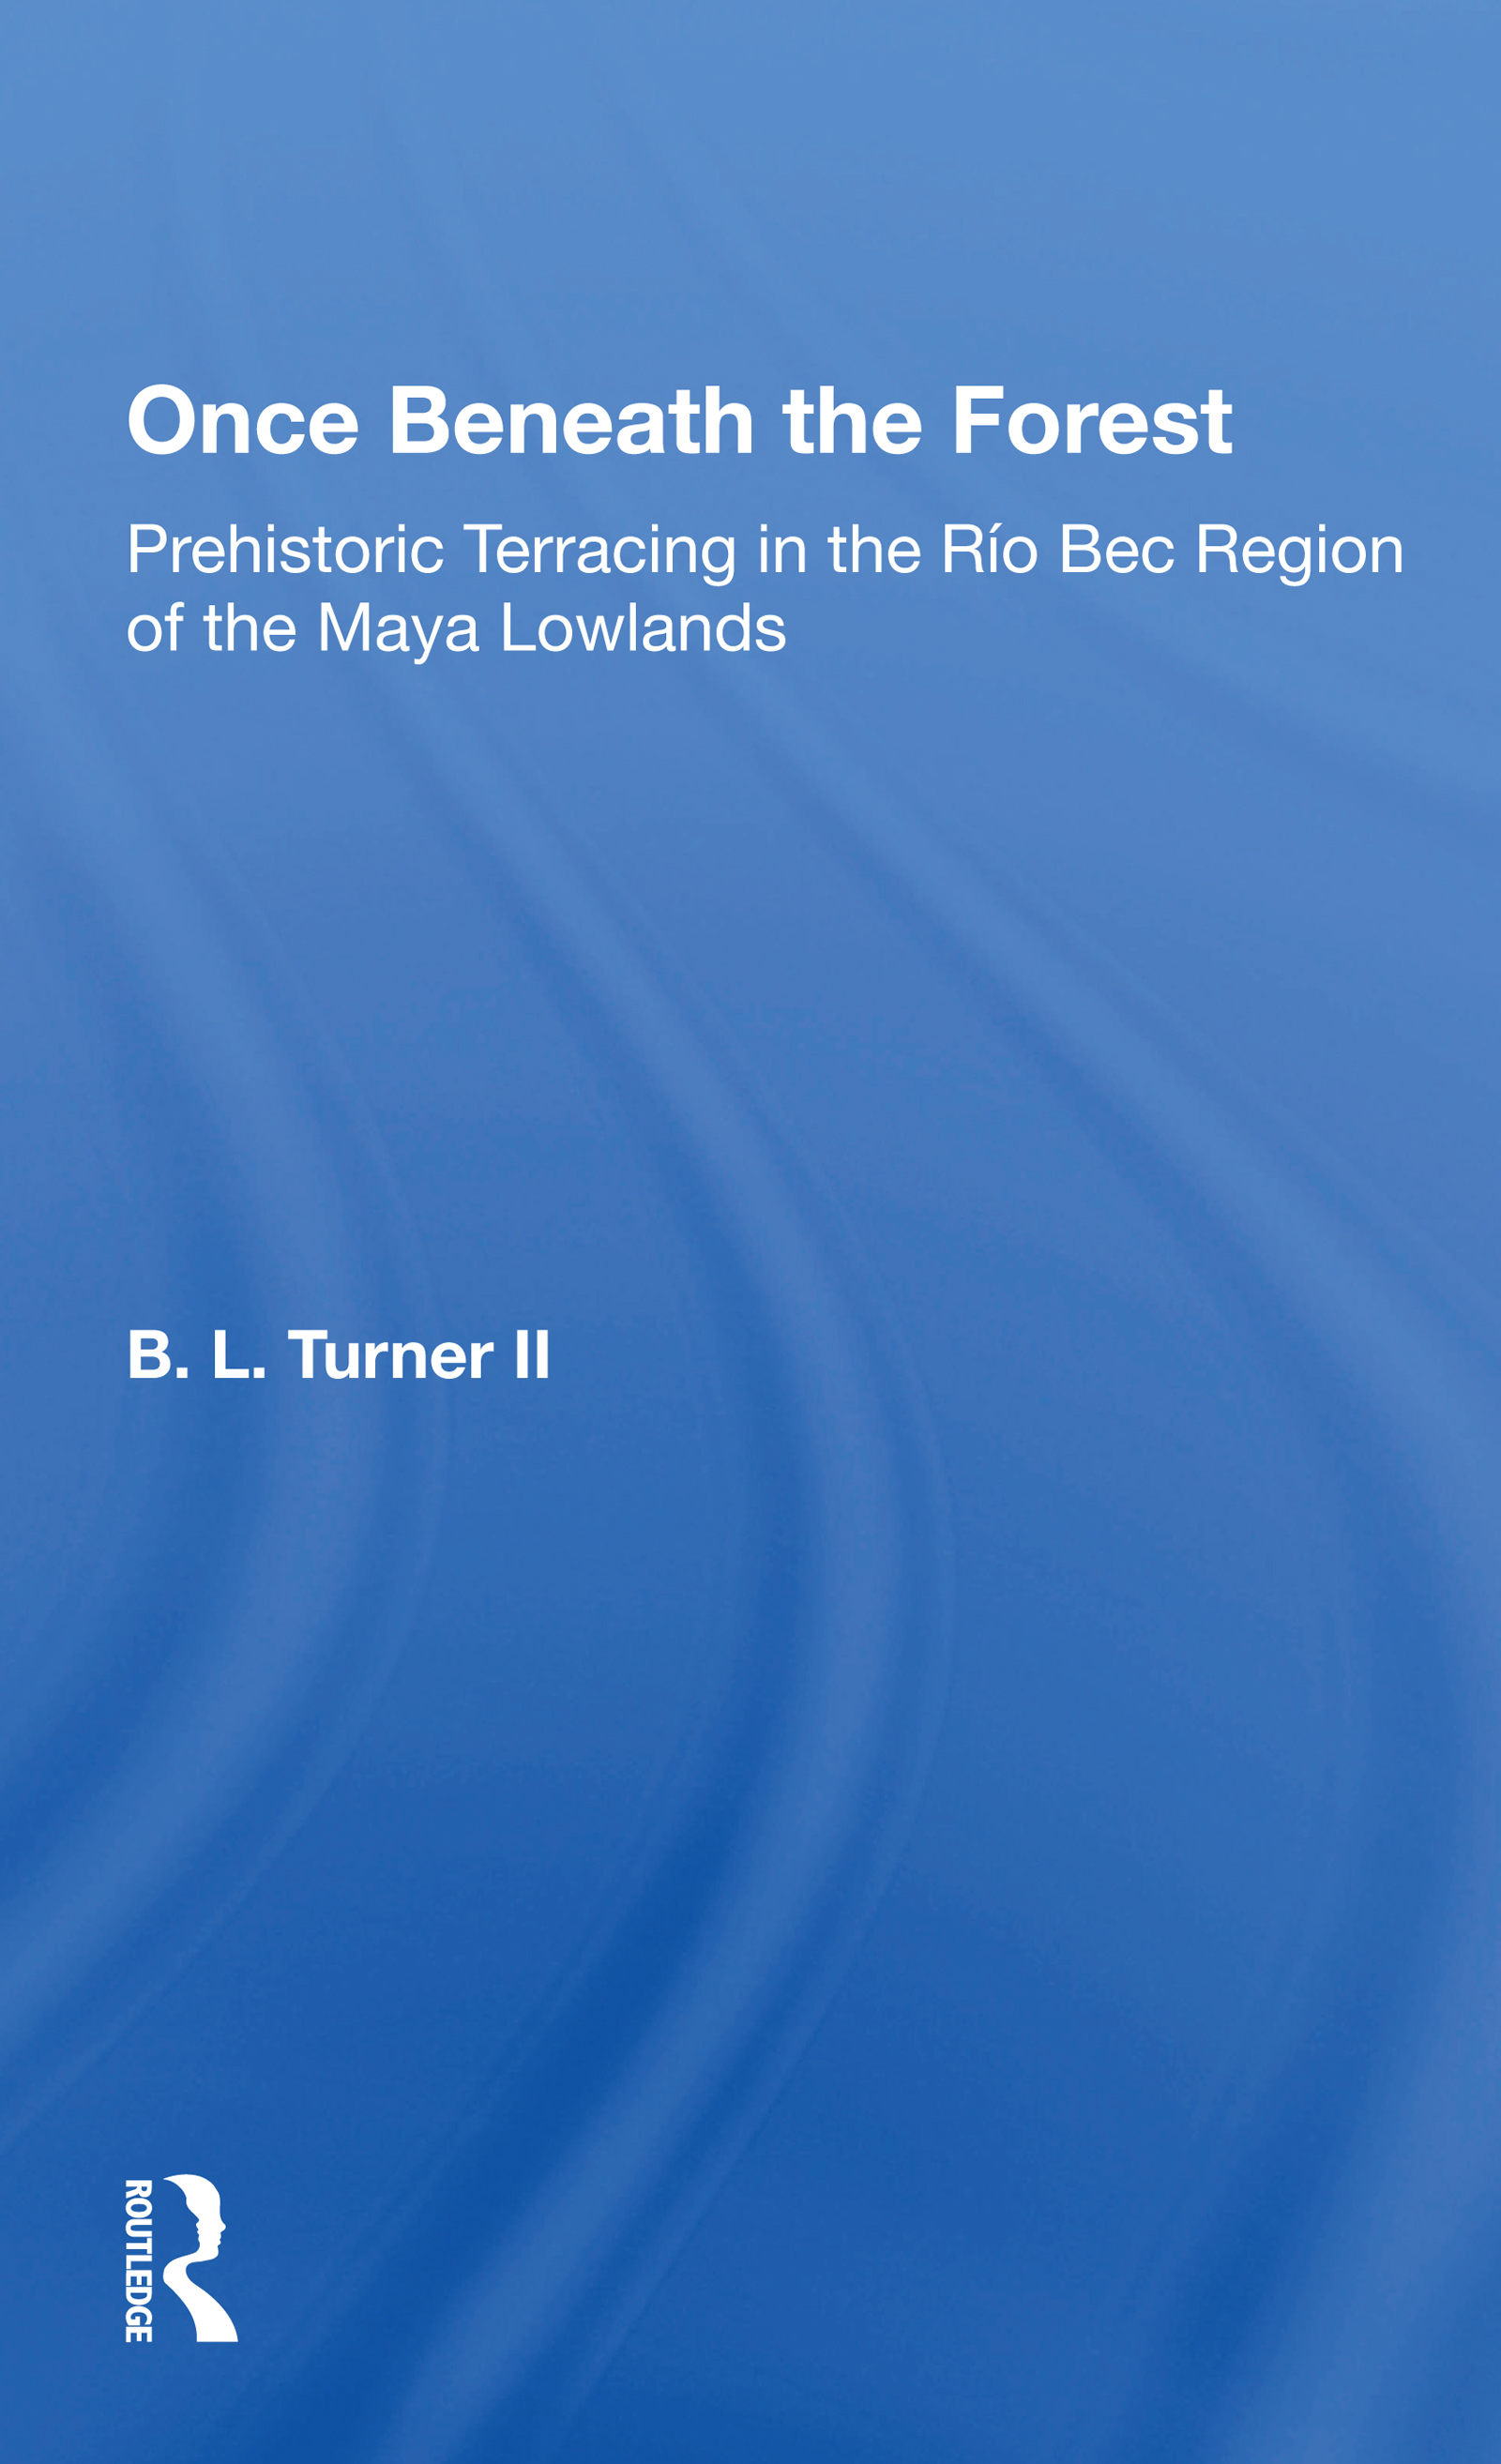 Río Bec Slope and Maya Agriculture: Interpretations and Perspectives